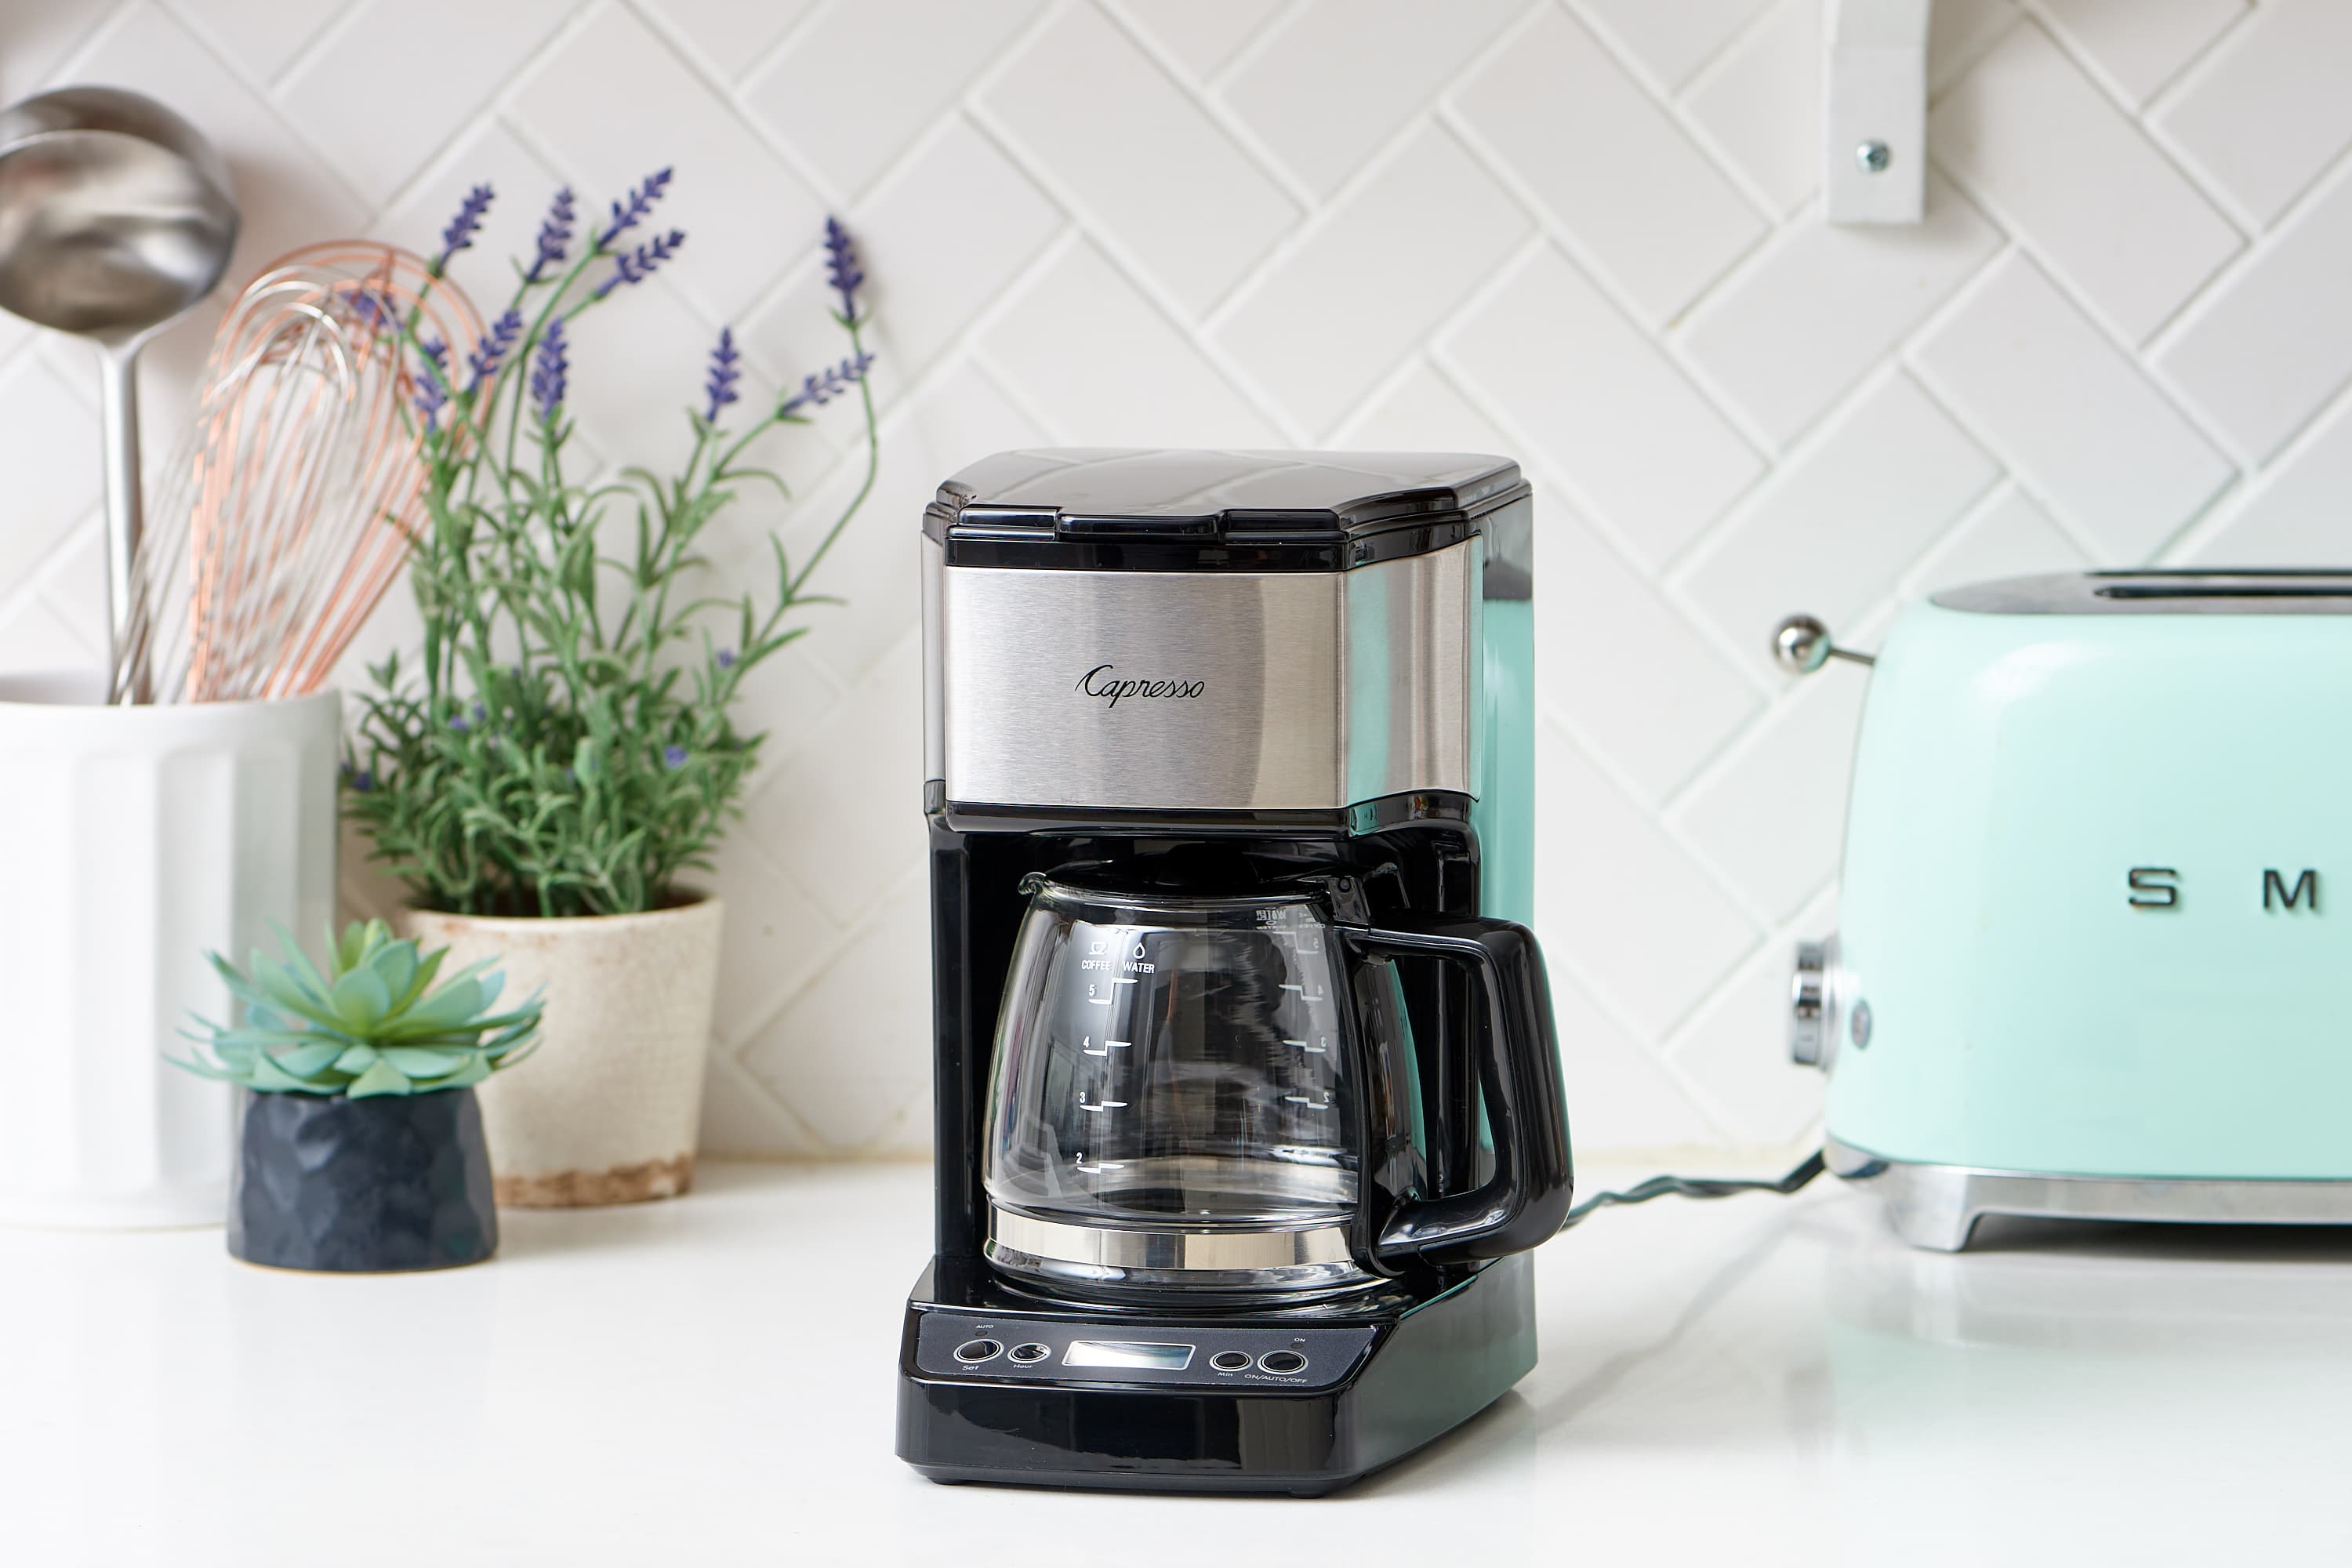 How To Descale A Coffee Maker Kitchn